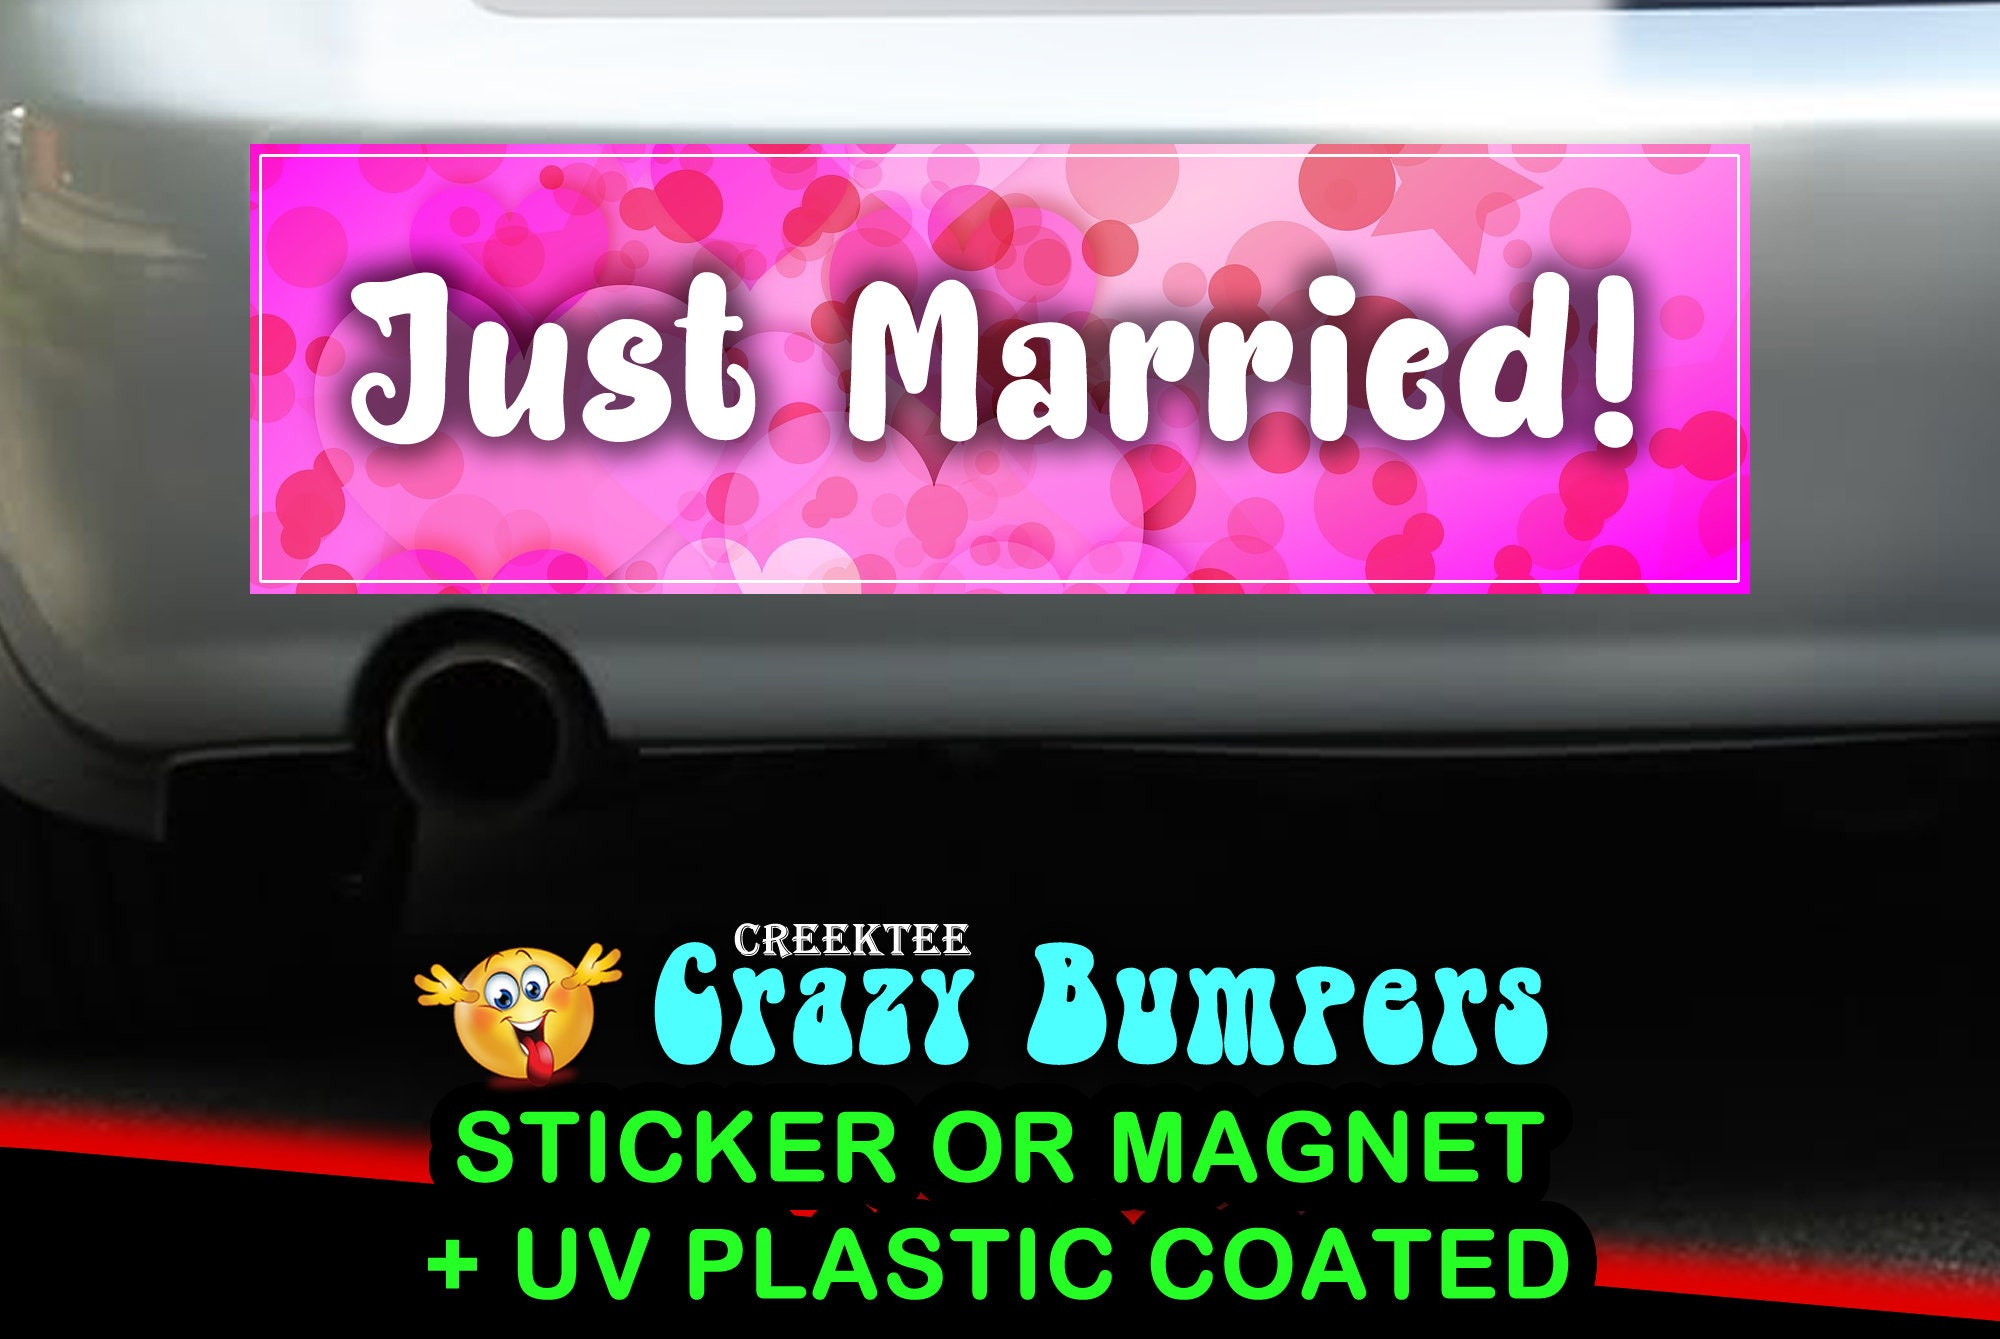 CAD$7.99 - Just Married 10 x 3 Bumper Sticker or Magnetic Bumper Sticker Available